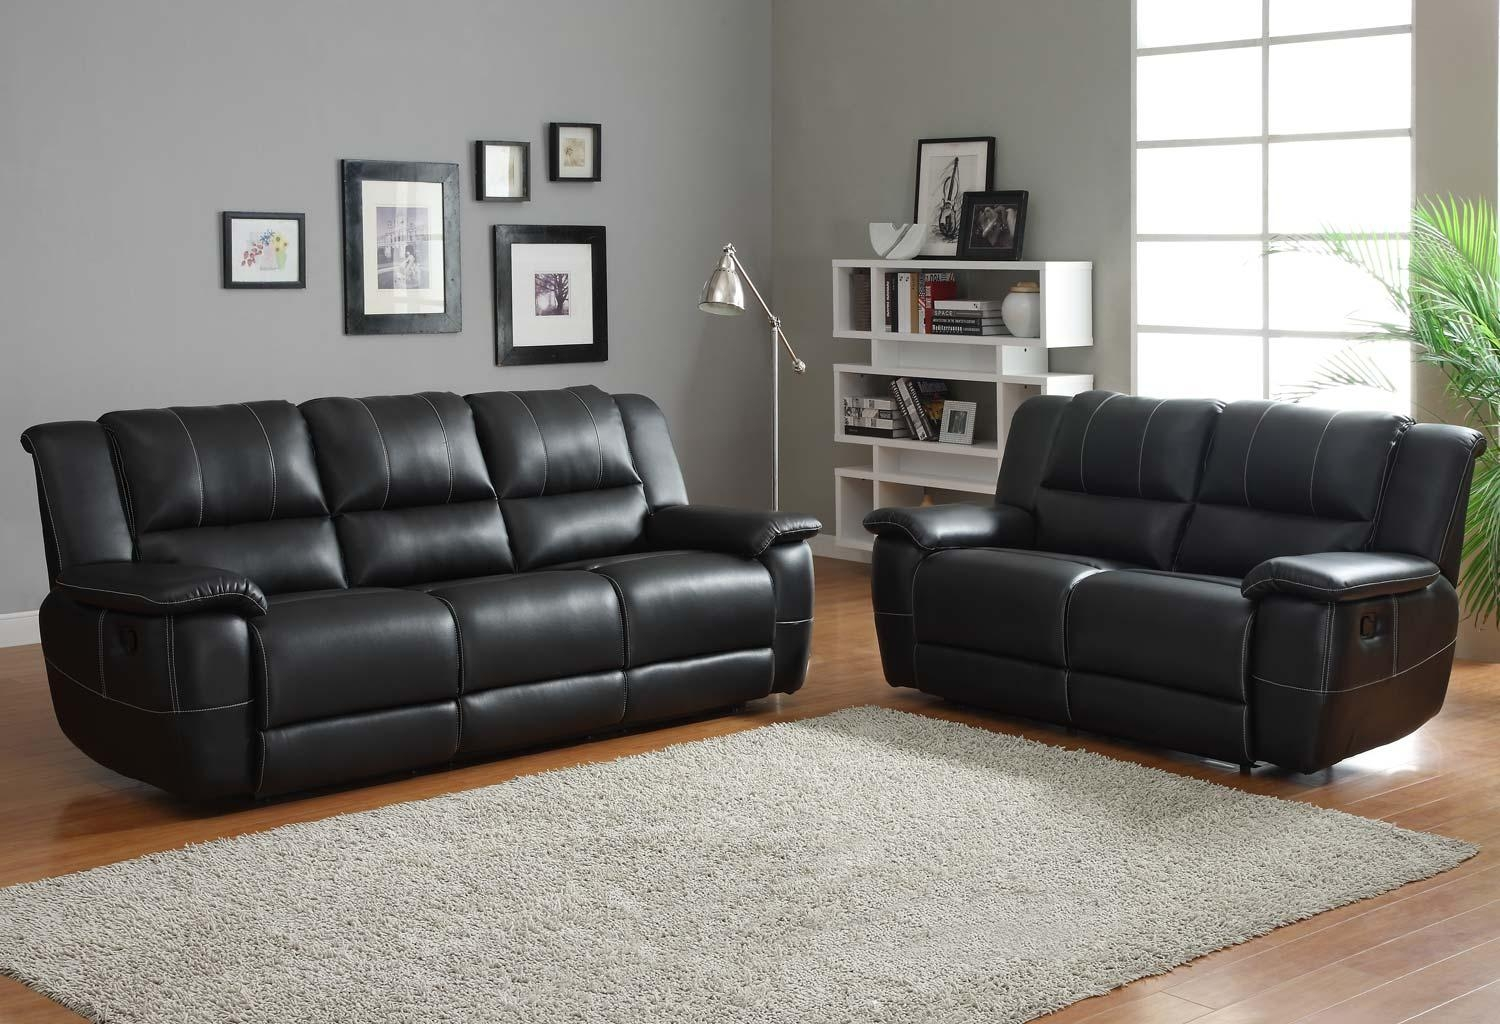 20 Best Contemporary Black Leather Sofas